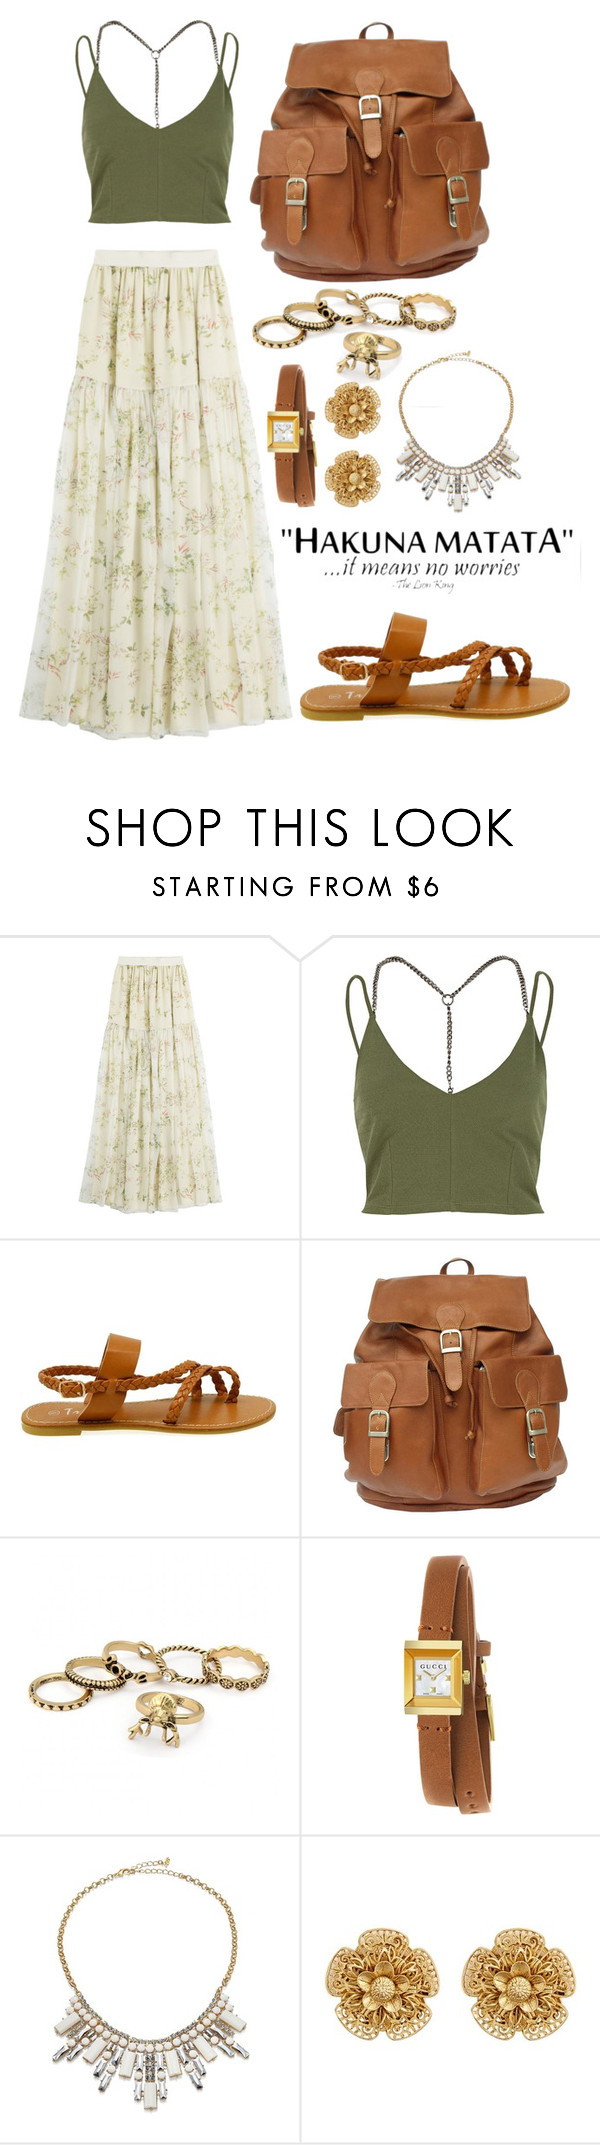 """Hakuna Matata"" by tychehecateartemishera ❤ liked on Polyvore featuring Giambattista Valli, River Island, Gucci, ABS by Allen Schwartz and Miriam Haskell"